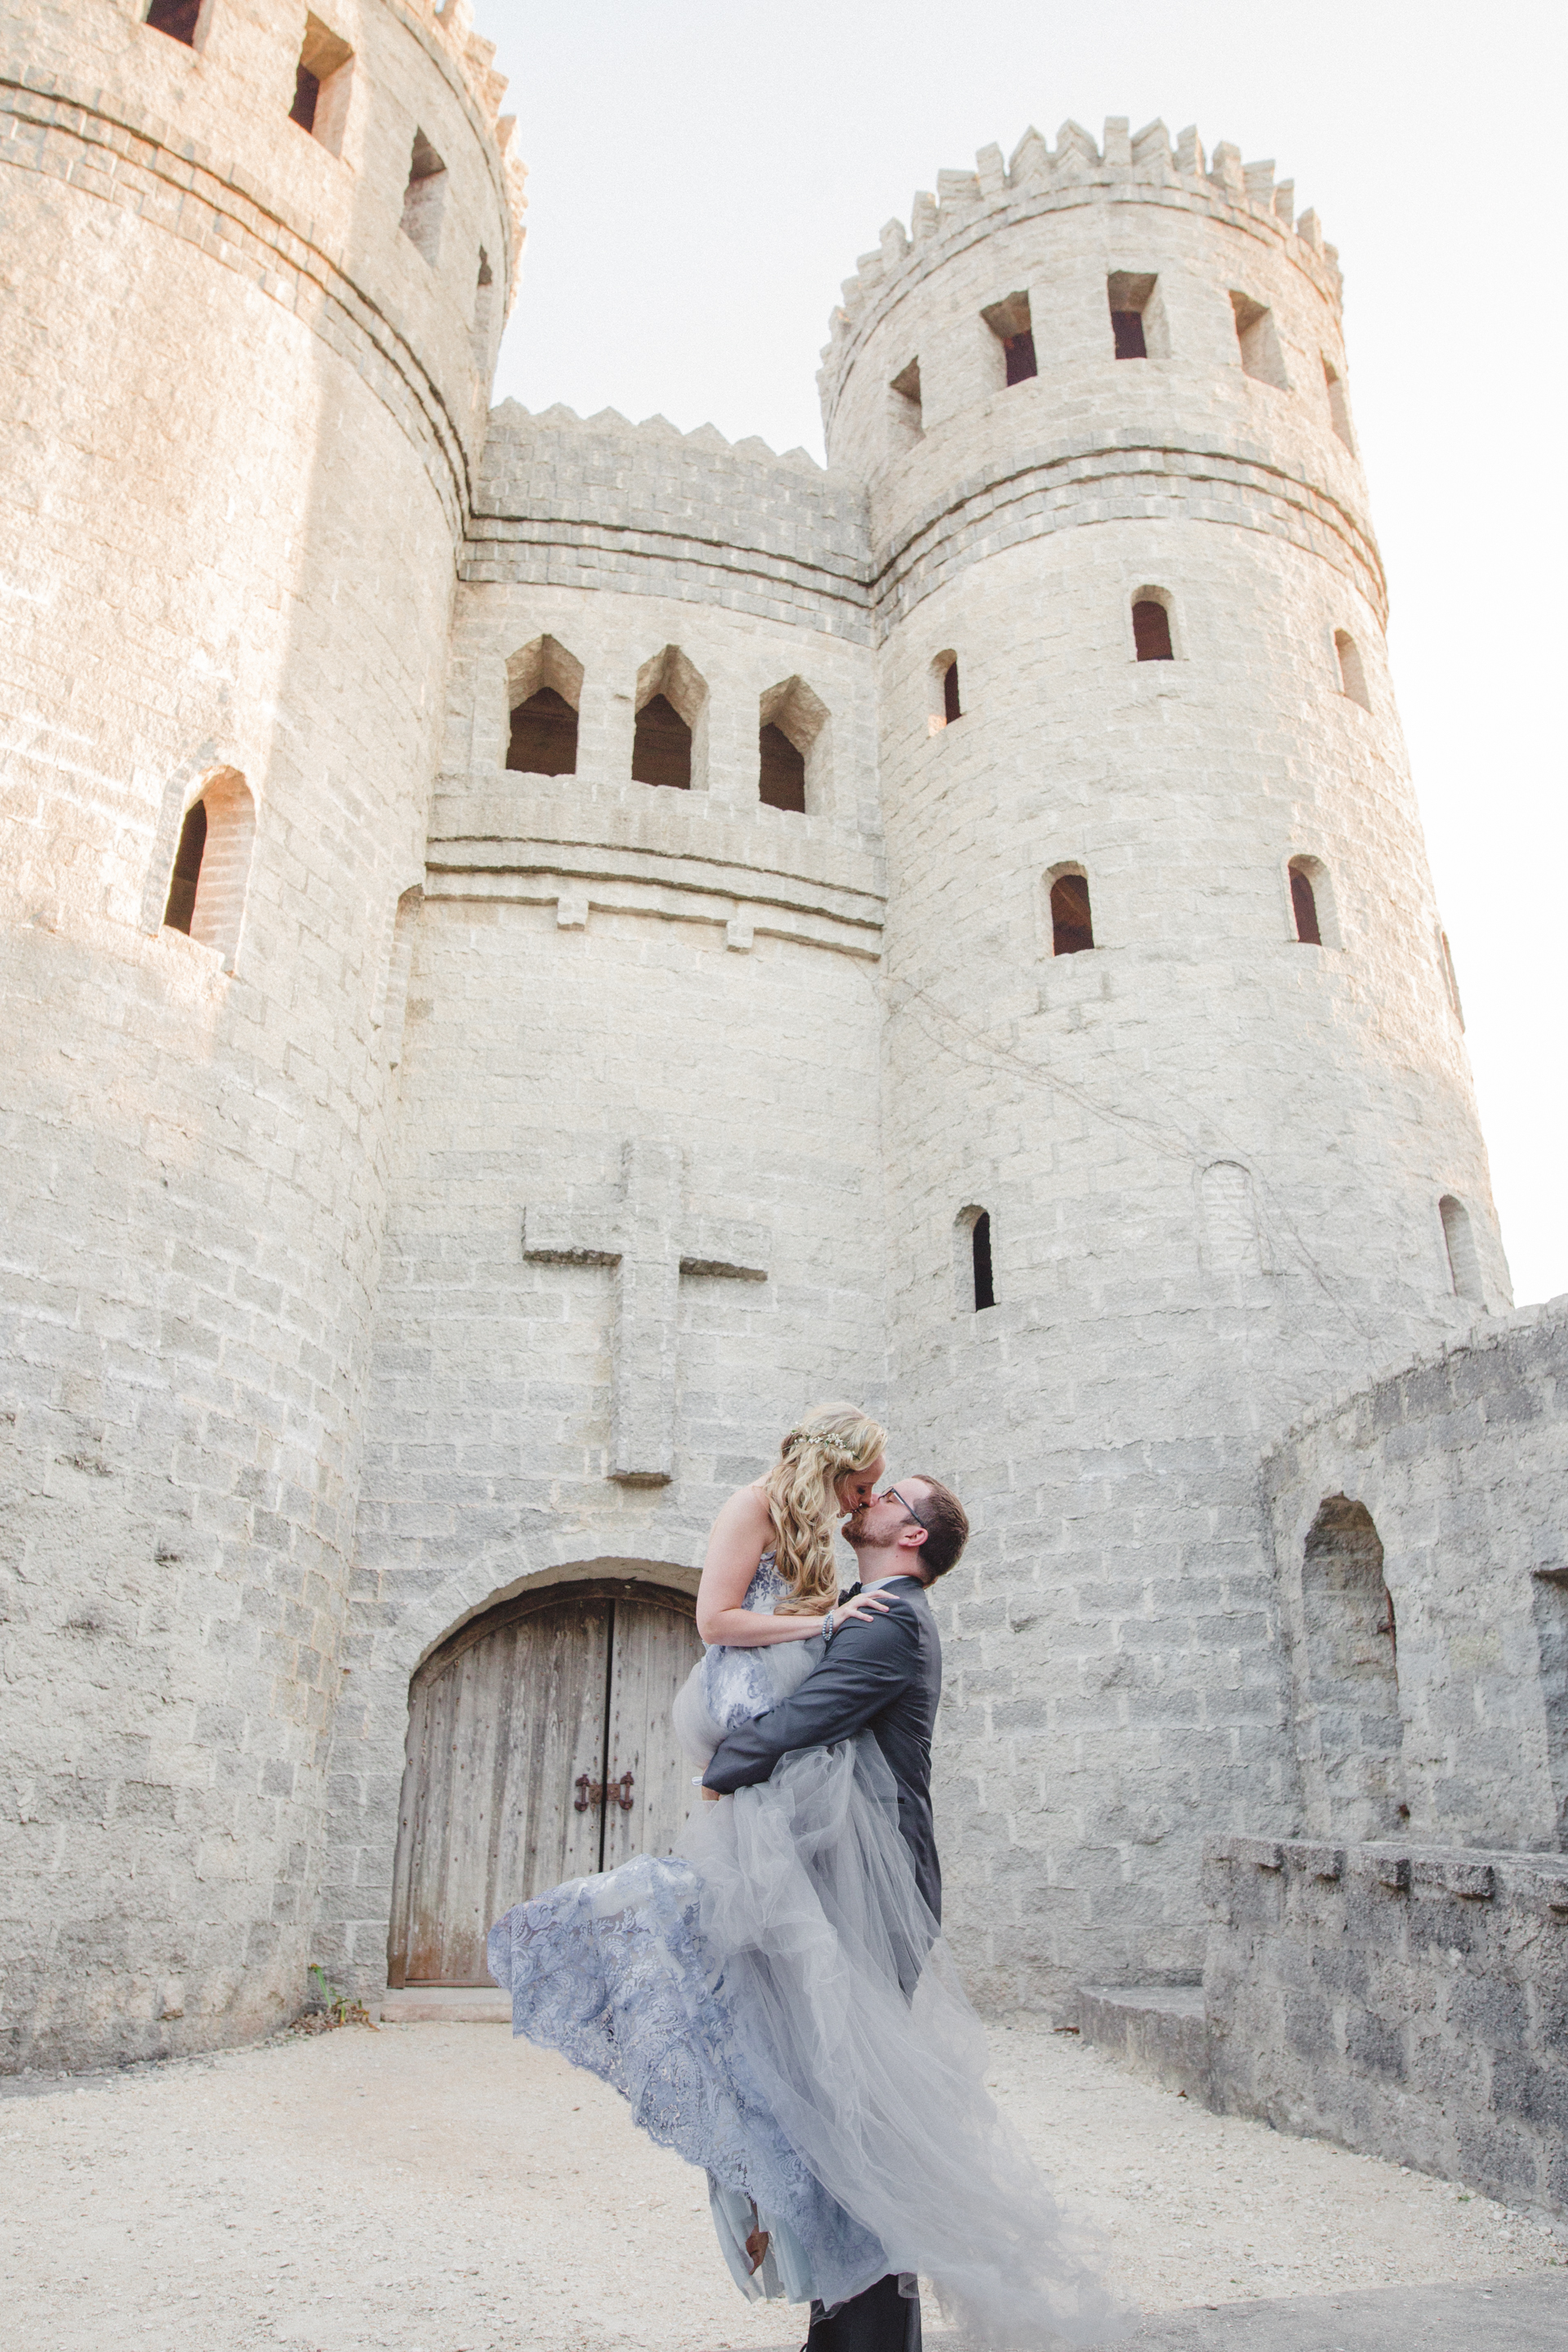 Castle Wedding Location Ideas